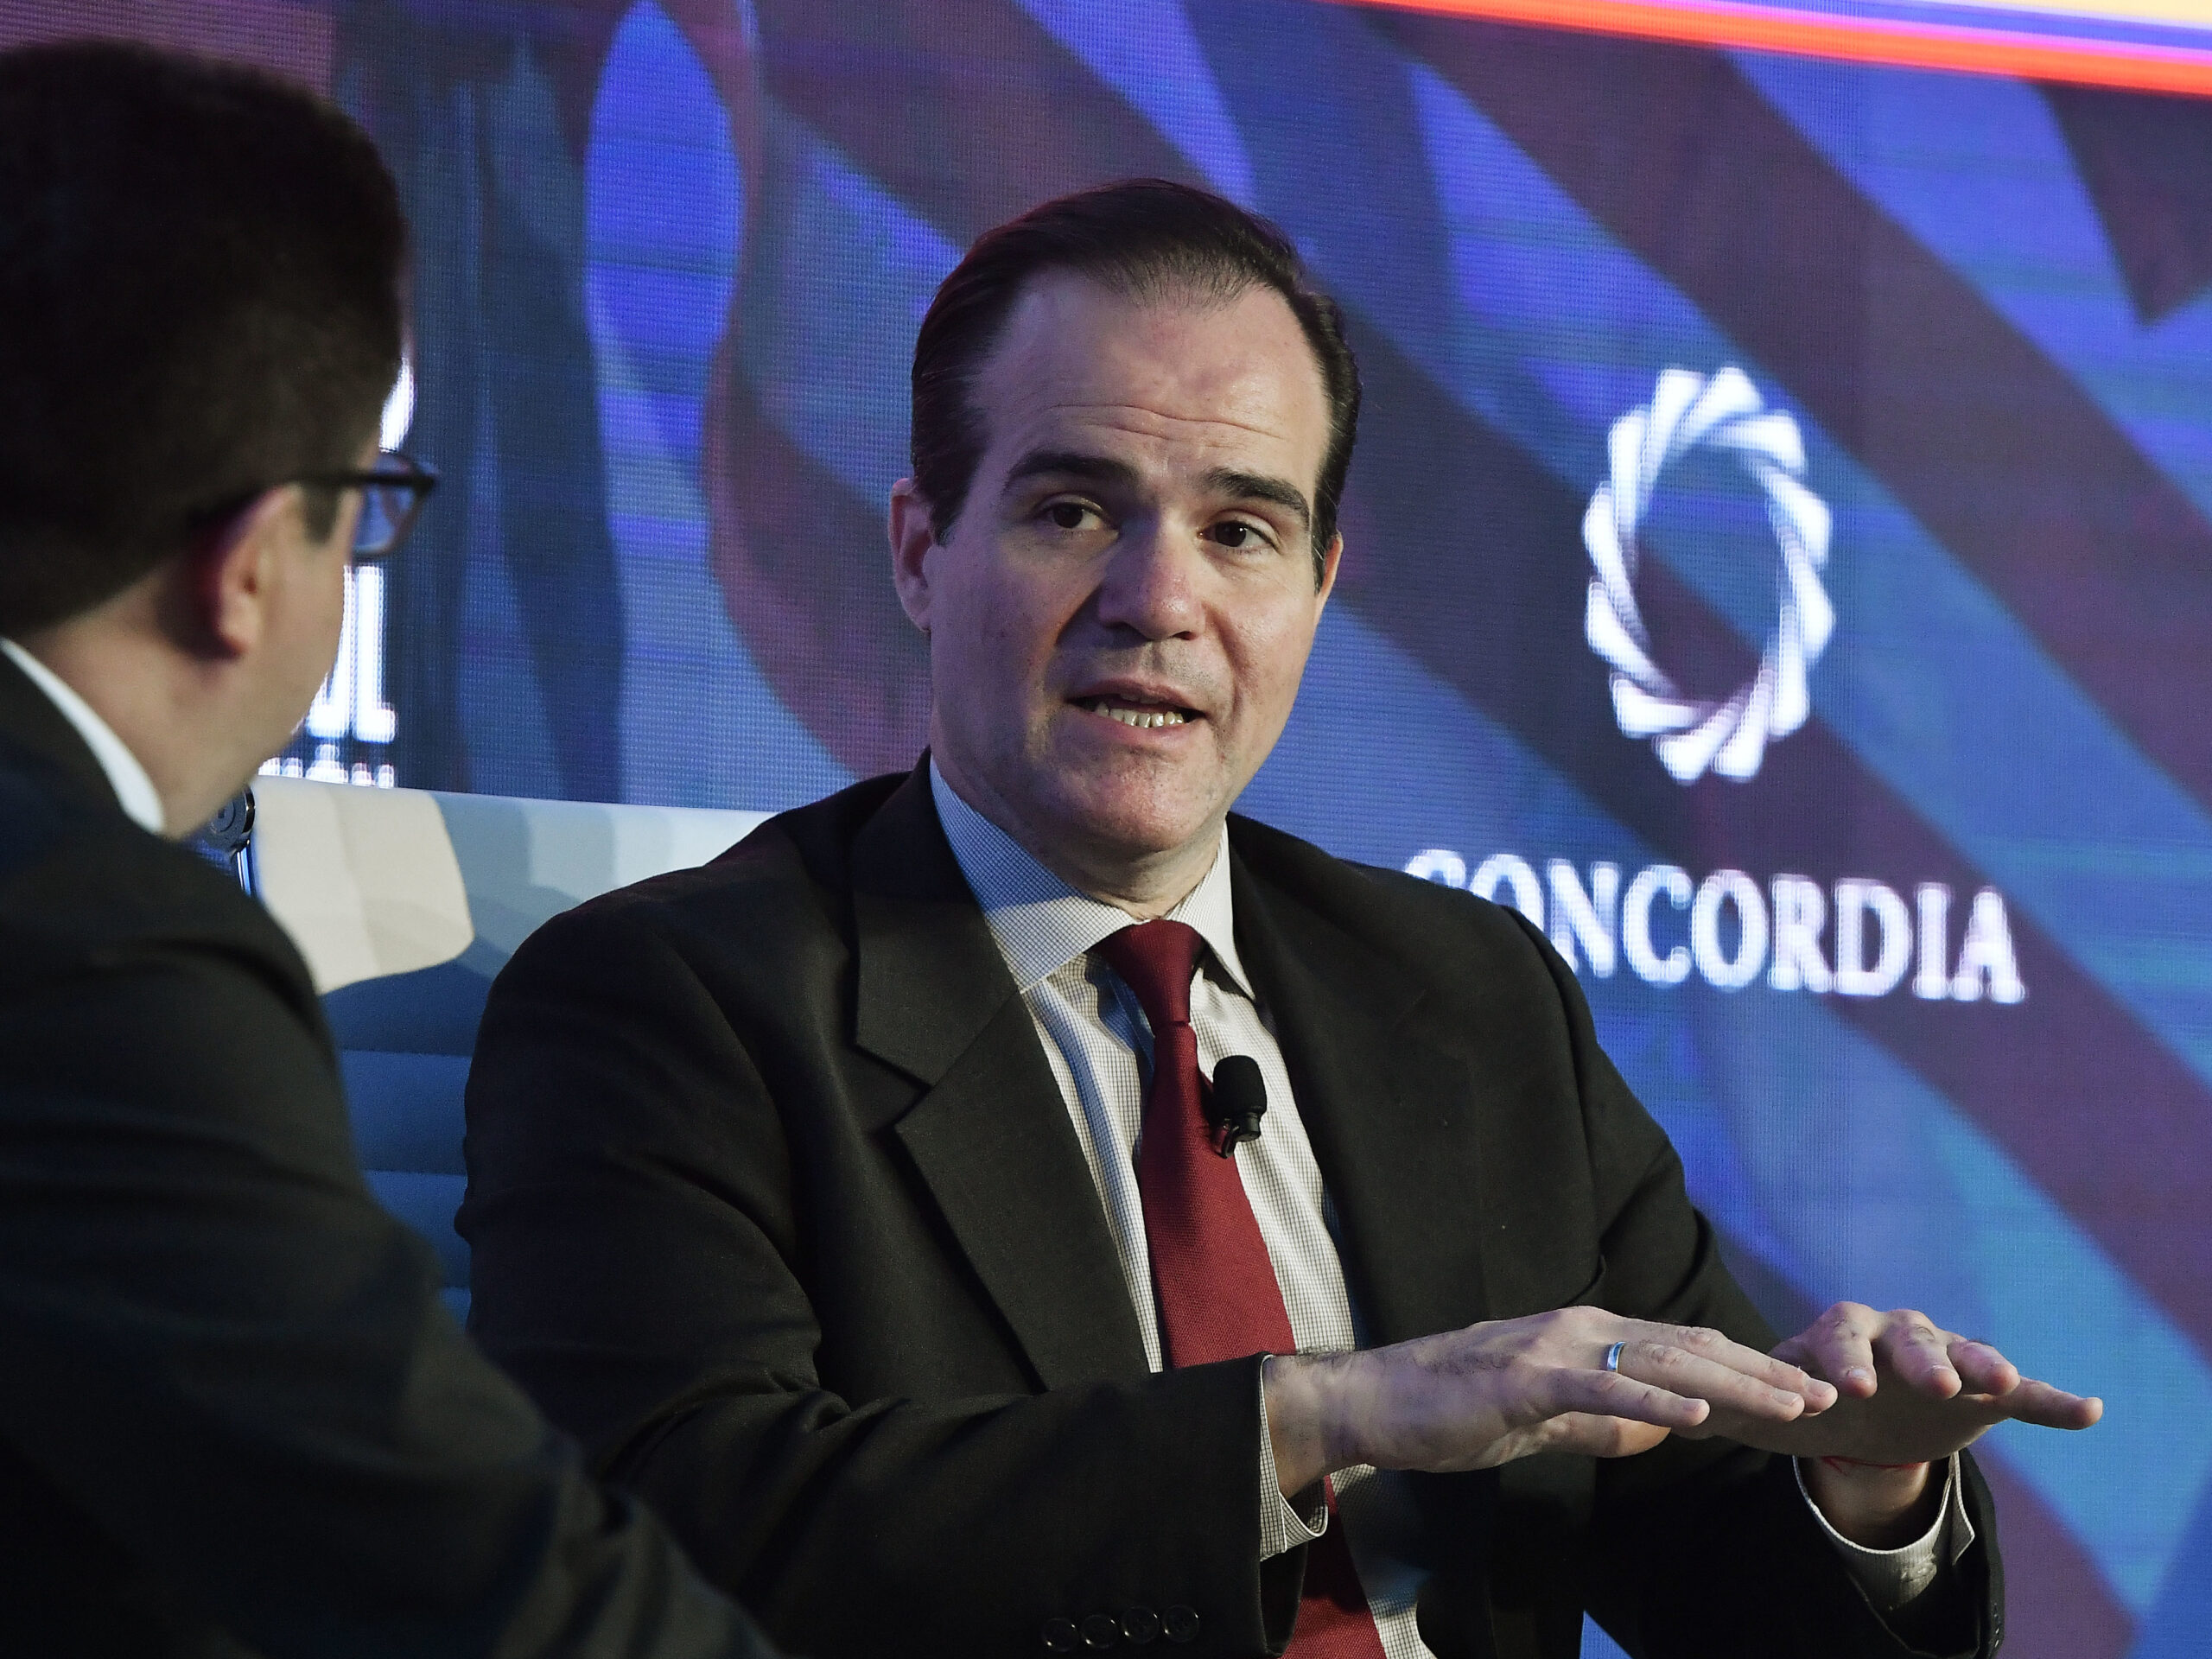 Trump's Candidate Is Poised To Become Inter-American Development Bank's 1st U.S. Head